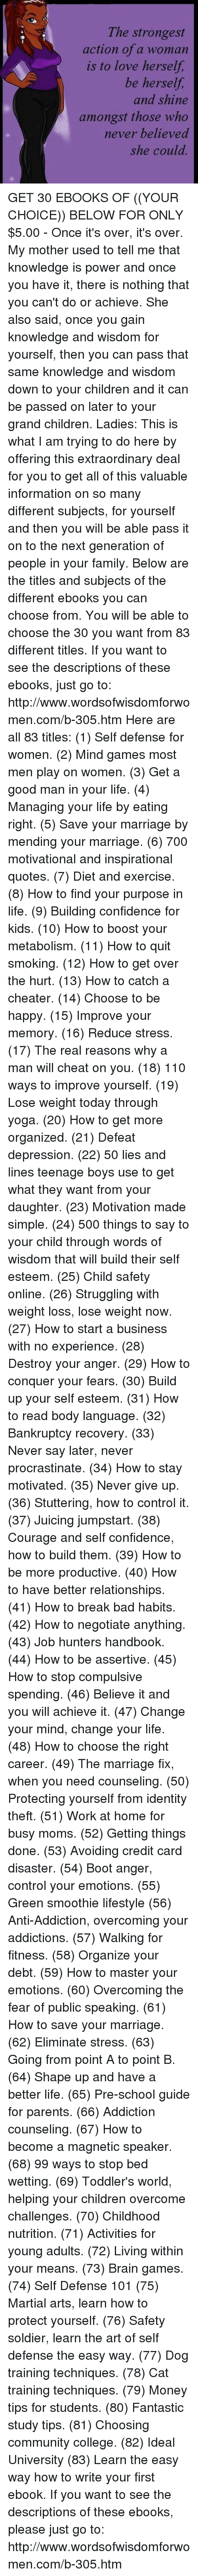 Bad, Bodies , and Brains: The strongest  action of a woman  is to love herself,  be herself  and shine  amongst those who  never believed  she could. GET 30 EBOOKS OF ((YOUR CHOICE)) BELOW FOR ONLY $5.00 - Once it's over, it's over.   My mother used to tell me that knowledge is power and once you have it, there is nothing that you can't do or achieve. She also said, once you gain knowledge and wisdom for yourself, then you can pass that same knowledge and wisdom down to your children and it can be passed on later to your grand children.   Ladies: This is what I am trying to do here by offering this extraordinary deal for you to get all of this valuable information on so many different subjects, for yourself and then you will be able pass it on to the next generation of people in your family. Below are the titles and subjects of the different ebooks you can choose from. You will be able to choose the 30 you want from 83 different titles. If you want to see the descriptions of these ebooks, just go to: http://www.wordsofwisdomforwomen.com/b-305.htm   Here are all 83 titles: (1) Self defense for women. (2) Mind games most men play on women. (3) Get a good man in your life. (4) Managing your life by eating right. (5) Save your marriage by mending your marriage. (6) 700 motivational and inspirational quotes. (7) Diet and exercise. (8) How to find your purpose in life. (9) Building confidence for kids. (10) How to boost your metabolism. (11) How to quit smoking. (12) How to get over the hurt. (13) How to catch a cheater. (14) Choose to be happy. (15) Improve your memory. (16) Reduce stress. (17) The real reasons why a man will cheat on you. (18) 110 ways to improve yourself. (19) Lose weight today through yoga. (20) How to get more organized. (21) Defeat depression. (22) 50 lies and lines teenage boys use to get what they want from your daughter. (23) Motivation made simple. (24) 500 things to say to your child through words of wisdom that will build their self esteem.   (25) Child safety online. (26) Struggling with weight loss, lose weight now. (27) How to start a business with no experience. (28) Destroy your anger. (29) How to conquer your fears. (30) Build up your self esteem. (31) How to read body language. (32) Bankruptcy recovery. (33) Never say later, never procrastinate. (34) How to stay motivated. (35) Never give up. (36) Stuttering, how to control it. (37) Juicing jumpstart. (38) Courage and self confidence, how to build them. (39) How to be more productive. (40) How to have better relationships. (41) How to break bad habits. (42) How to negotiate anything. (43) Job hunters handbook. (44) How to be assertive. (45) How to stop compulsive spending. (46) Believe it and you will achieve it. (47) Change your mind, change your life. (48) How to choose the right career. (49) The marriage fix, when you need counseling. (50) Protecting yourself from identity theft. (51) Work at home for busy moms. (52) Getting things done. (53) Avoiding credit card disaster.   (54) Boot anger, control your emotions. (55) Green smoothie lifestyle (56) Anti-Addiction, overcoming your addictions. (57) Walking for fitness. (58) Organize your debt. (59) How to master your emotions. (60) Overcoming the fear of public speaking. (61) How to save your marriage. (62) Eliminate stress. (63) Going from point A to point B. (64) Shape up and have a better life. (65) Pre-school guide for parents. (66) Addiction counseling. (67) How to become a magnetic speaker. (68) 99 ways to stop bed wetting. (69) Toddler's world, helping your children overcome challenges. (70) Childhood nutrition. (71) Activities for young adults. (72) Living within your means. (73) Brain games. (74) Self Defense 101 (75) Martial arts, learn how to protect yourself. (76) Safety soldier, learn the art of self defense the easy way. (77) Dog training techniques. (78) Cat training techniques. (79) Money tips for students. (80) Fantastic study tips. (81) Choosing community college. (82) Ideal University (83) Learn the easy way how to write your first ebook.  If you want to see the descriptions of these ebooks, please just go to: http://www.wordsofwisdomforwomen.com/b-305.htm